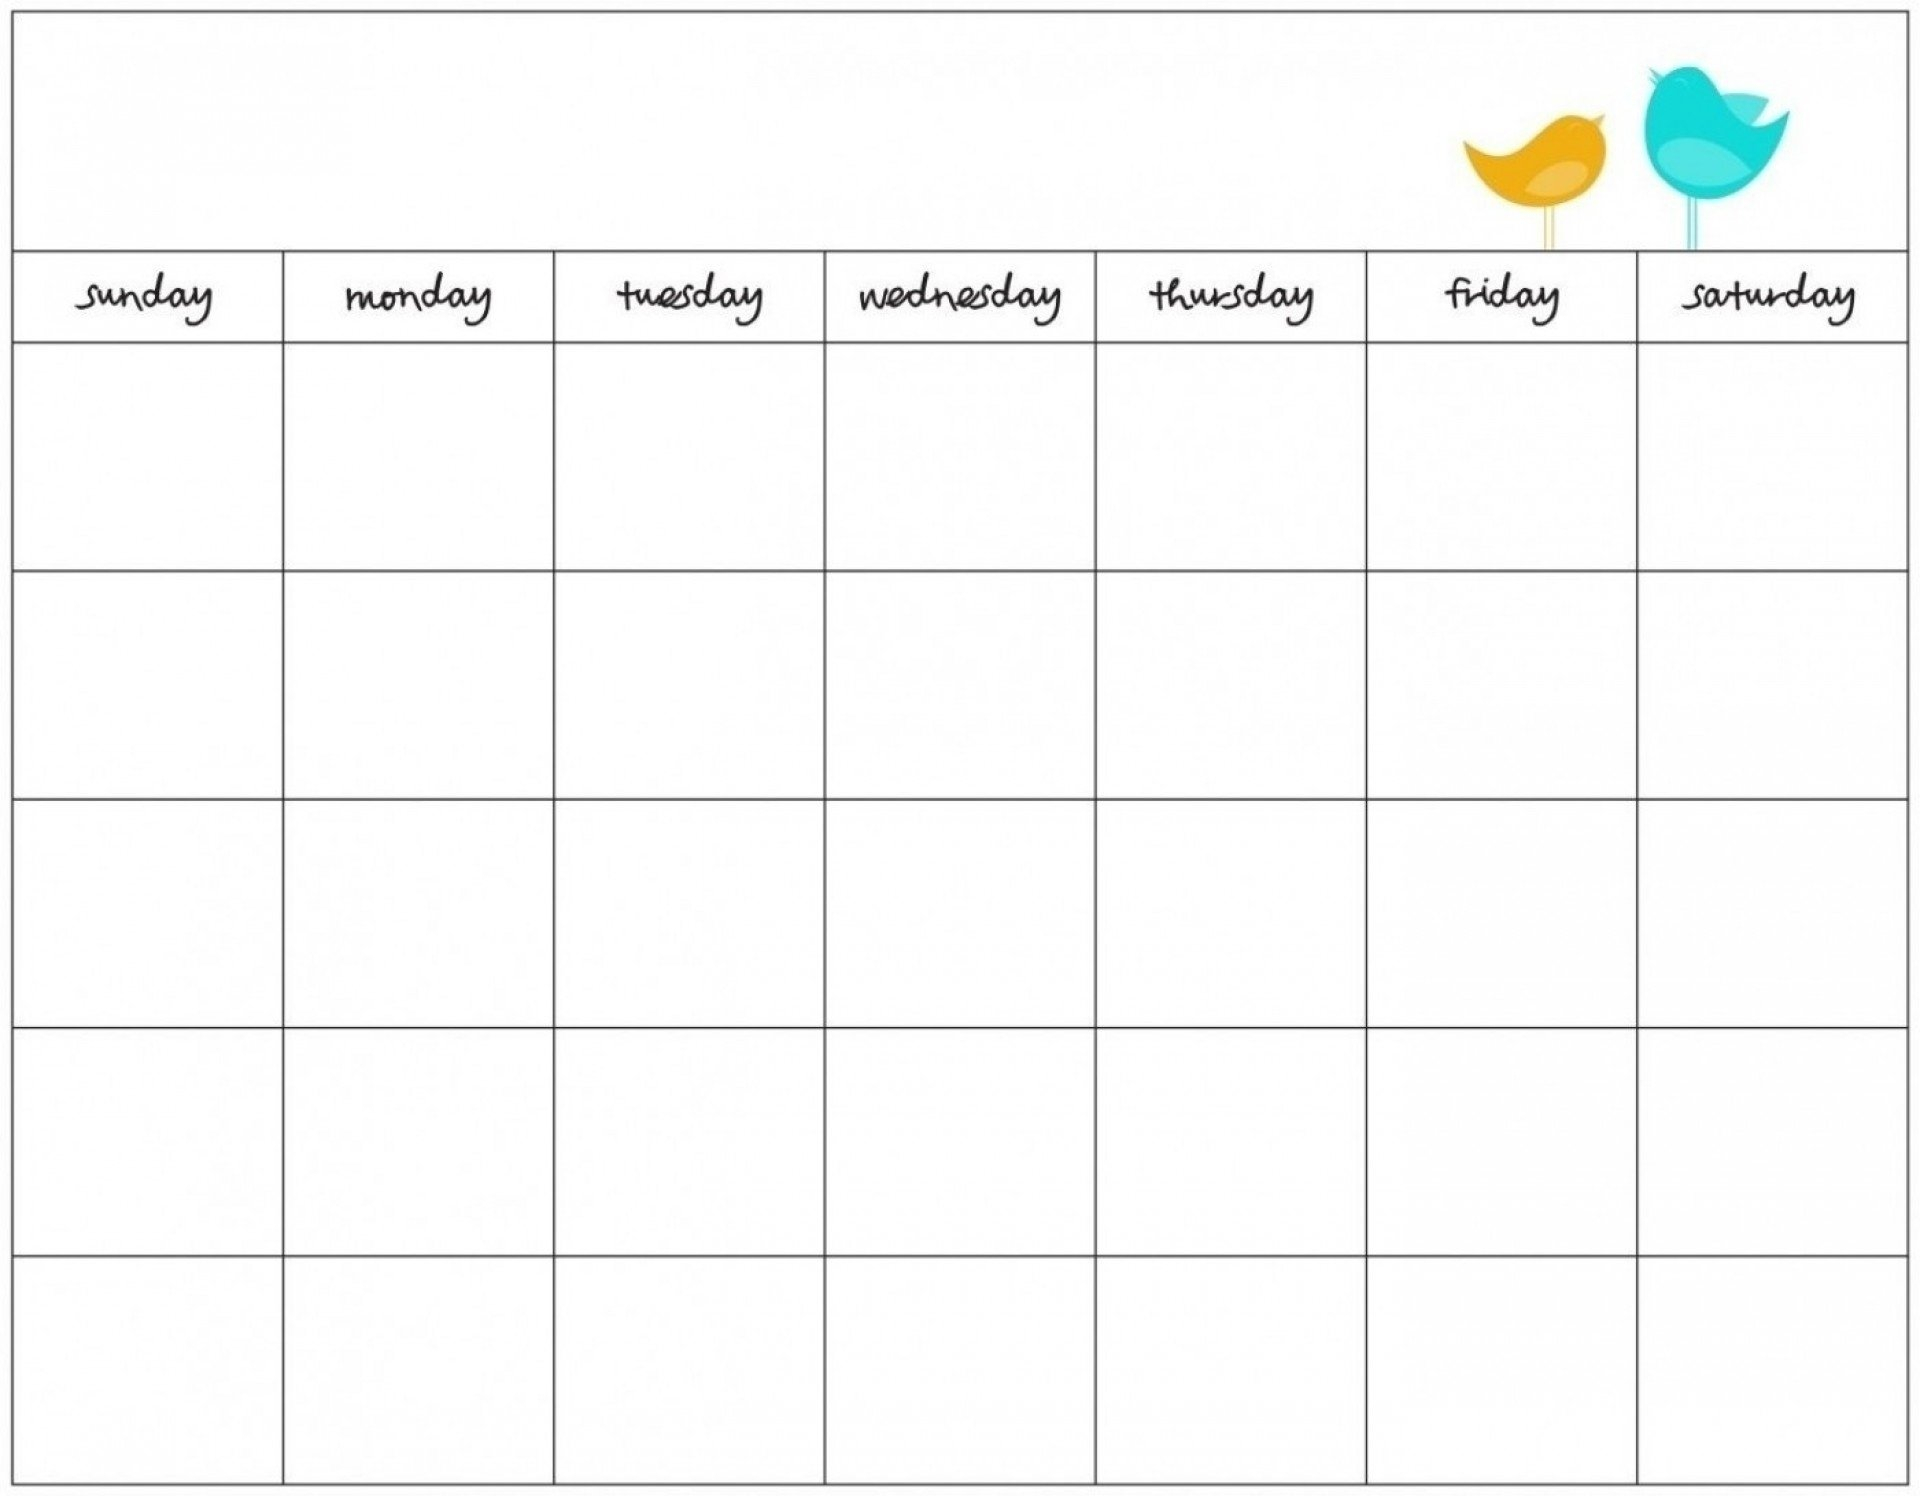 Blank 7 Day Calendar To Print | Free Calendar Template Example 7 Day Schedule Template Blank